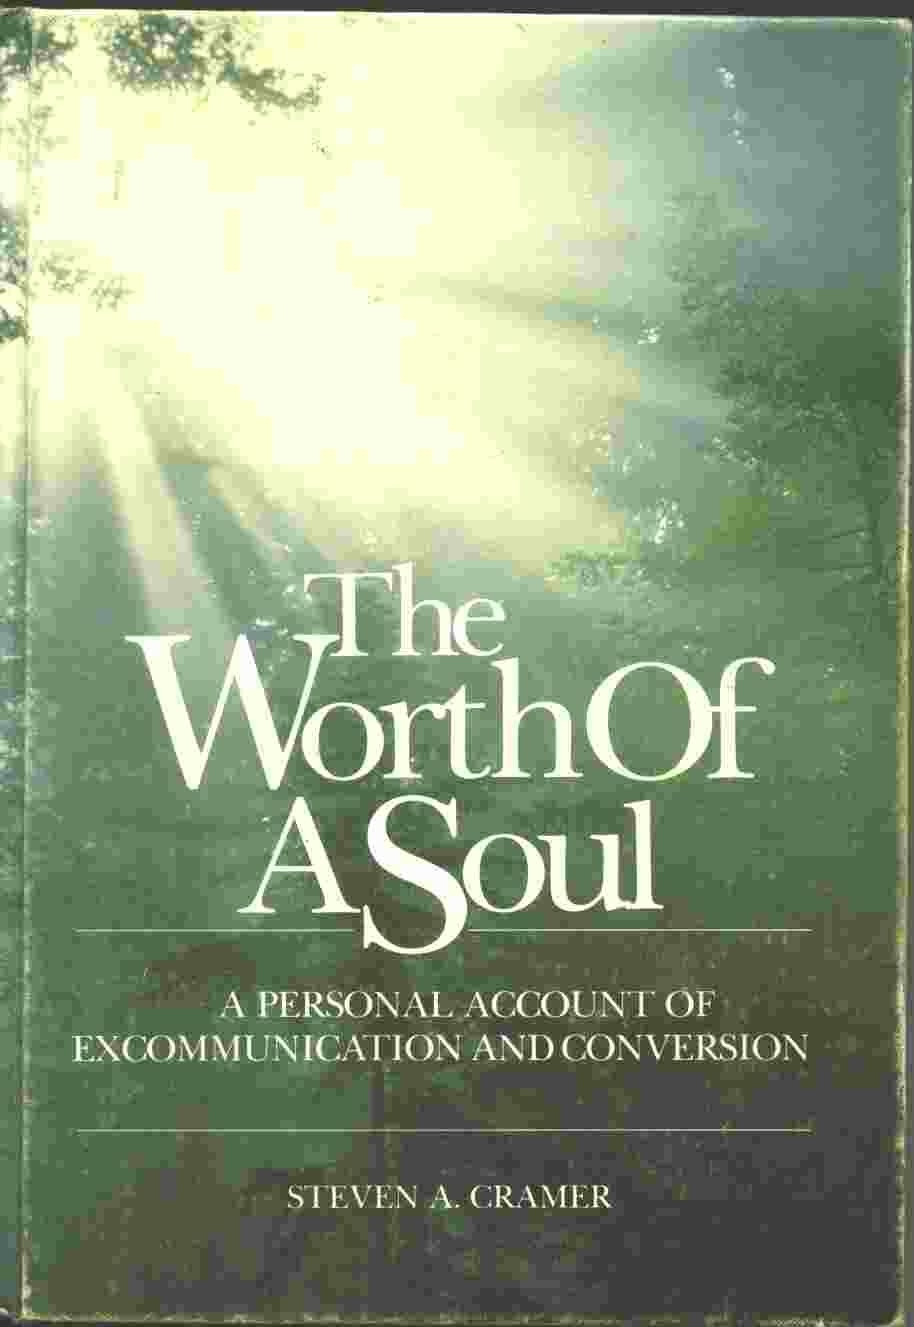 Image for THE WORTH OF A SOUL - A Personal Account of Excommunication and Conversion